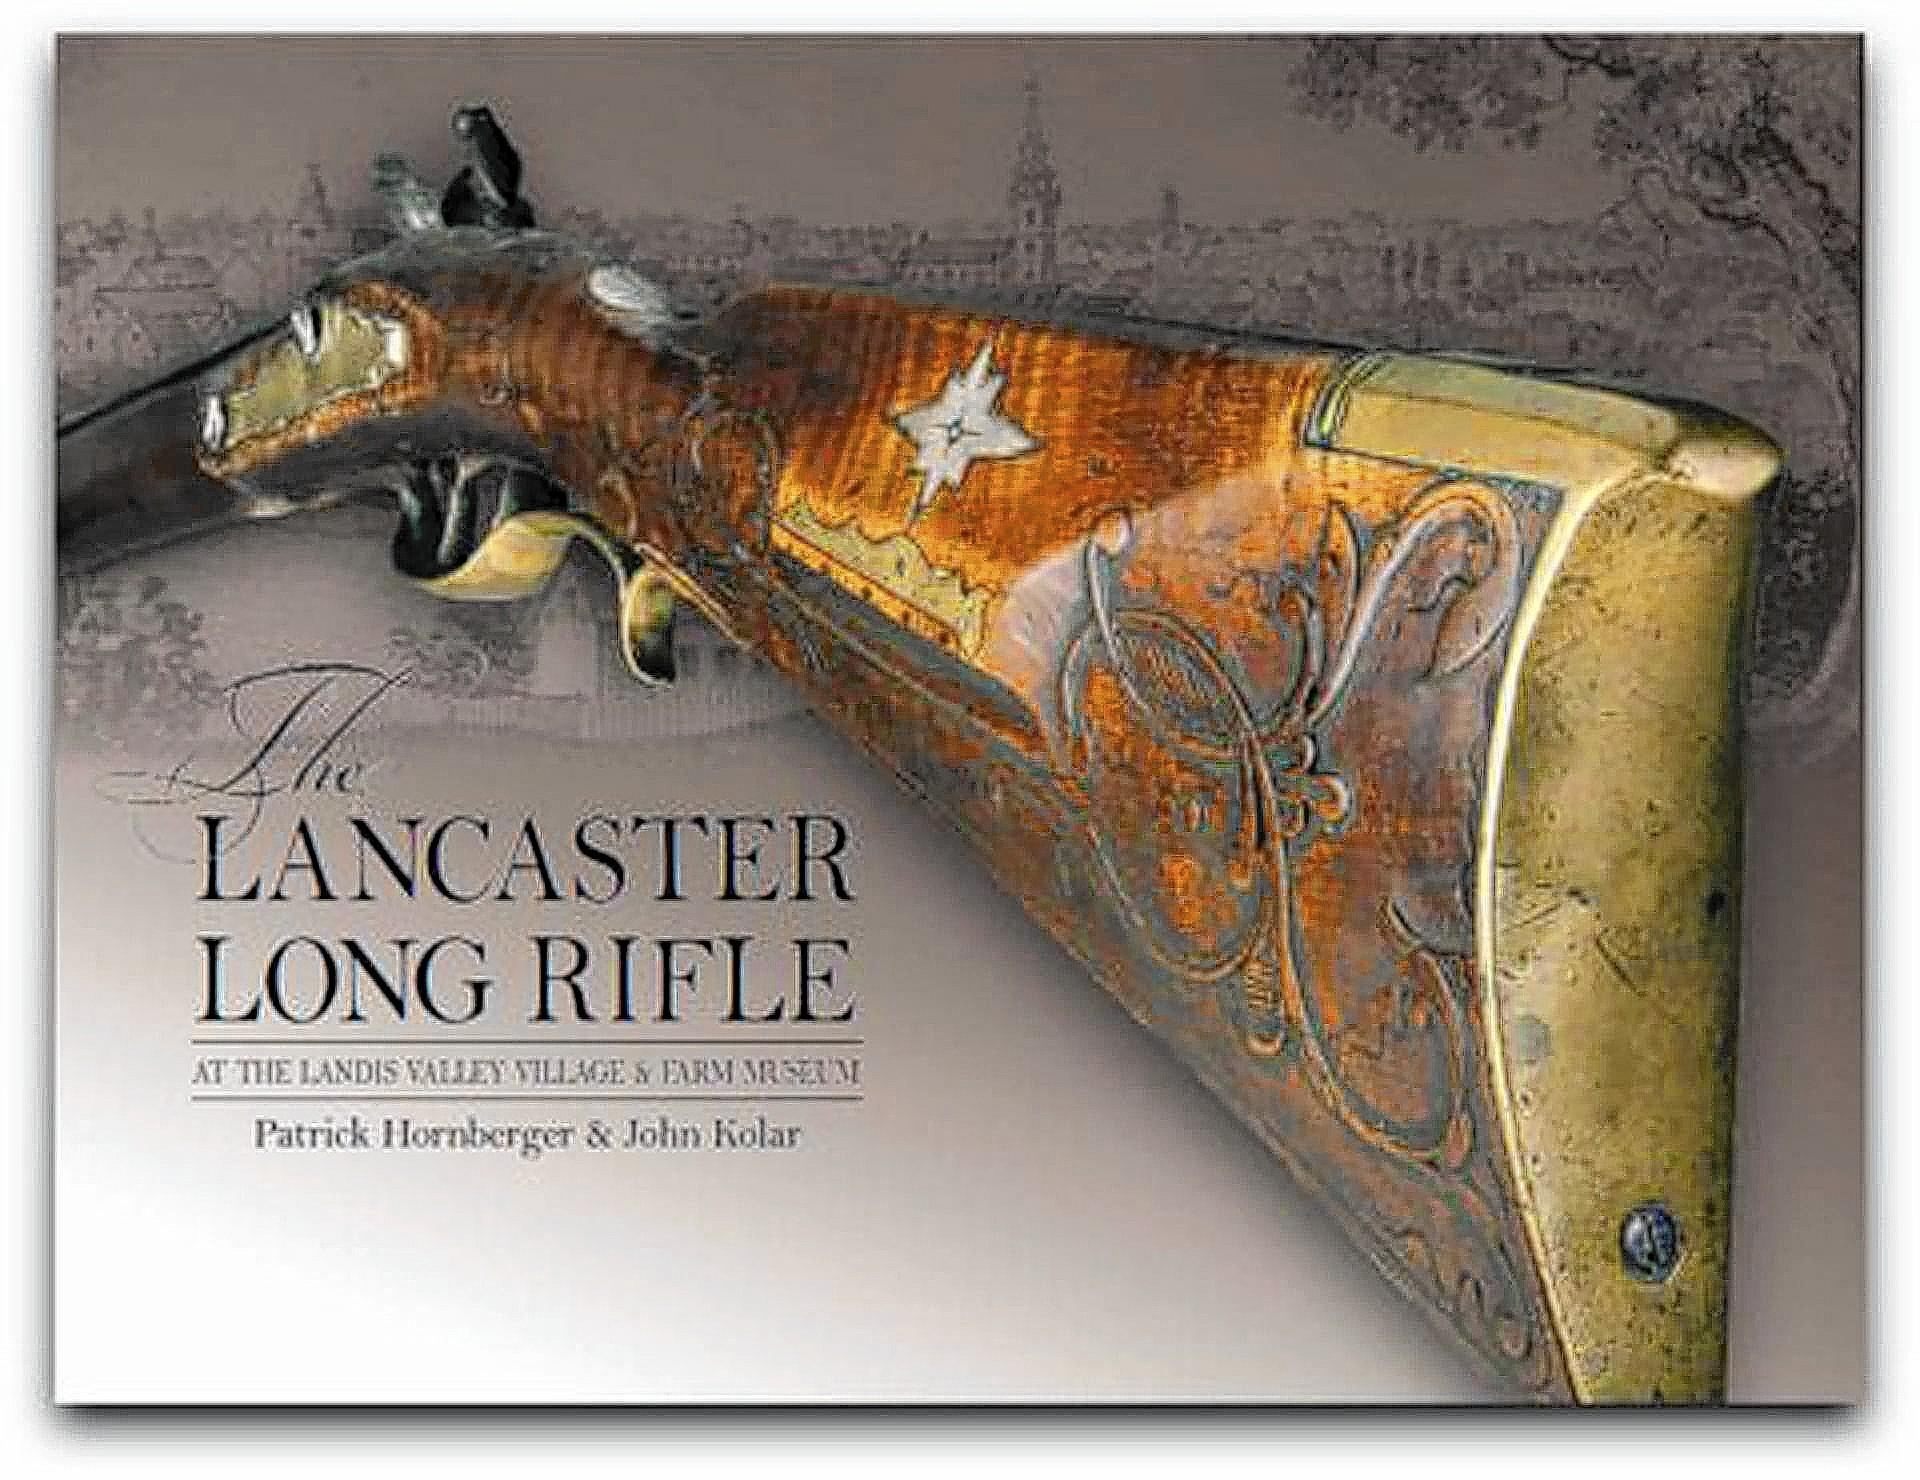 Patrick Hornberger, co-author of 'The Lancaster Long Rifle,' questions the accuracy of information used to name the Pennsylvania long rifle as the state's official firearm.